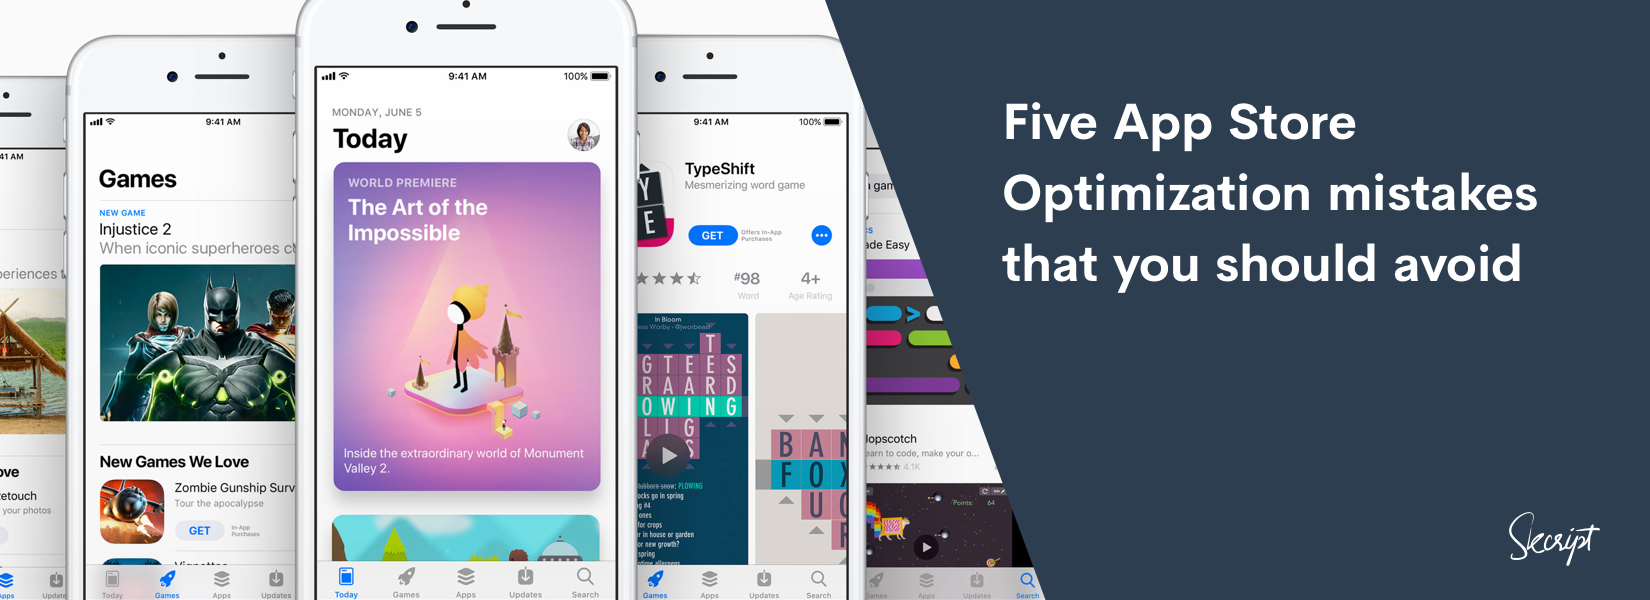 Five App Store Optimization mistakes that you should avoid